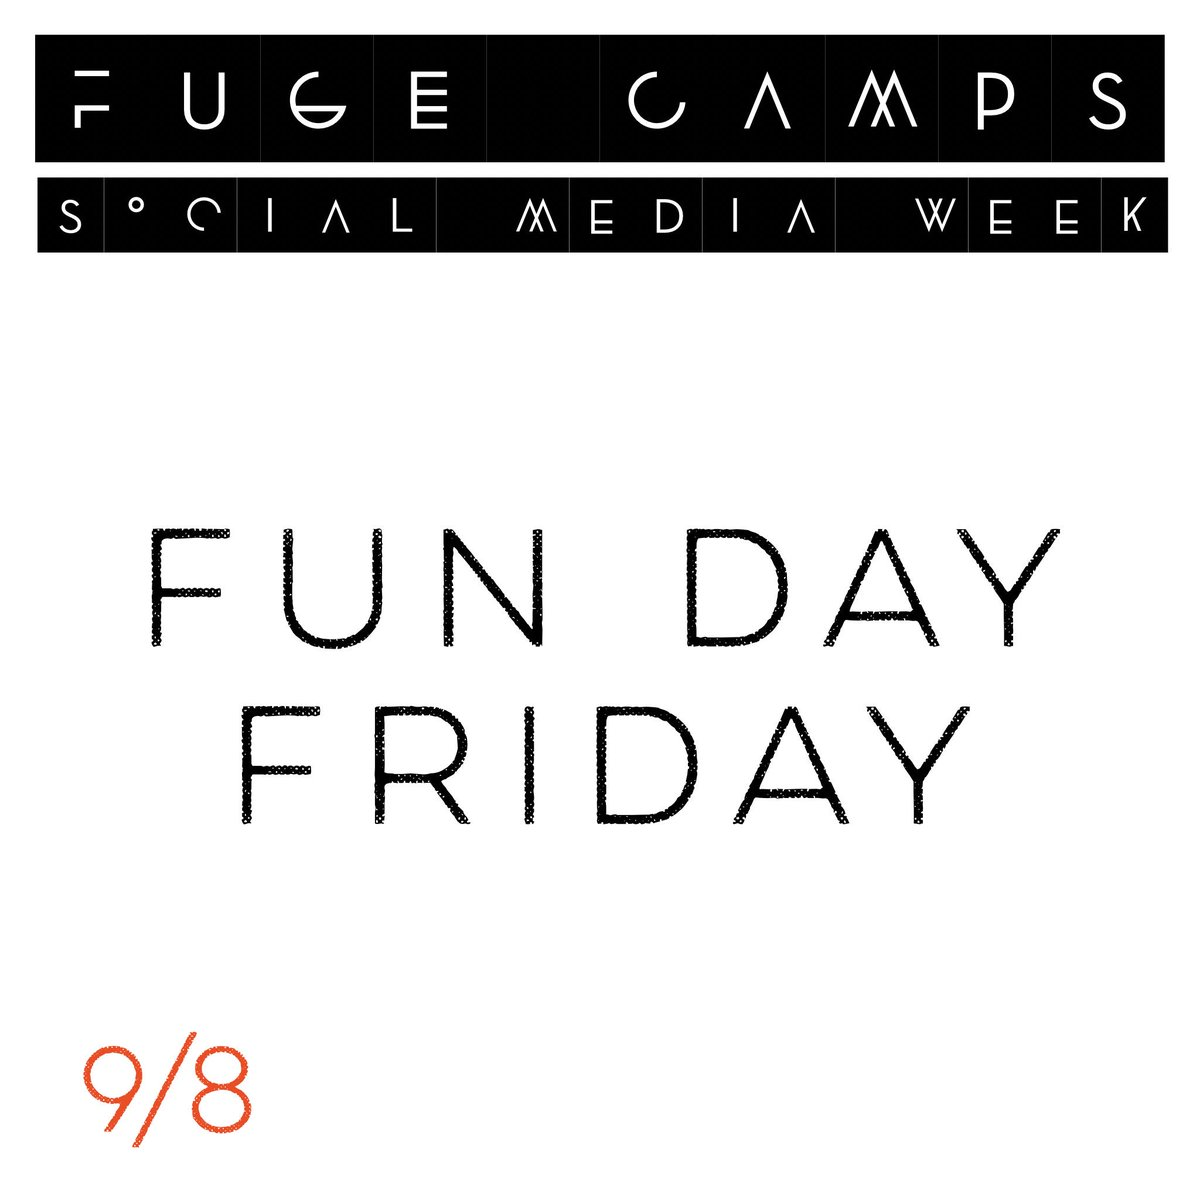 test Twitter Media - Fun Day Friday!! Post whatever fun things you want about camp! This week has been a total BLAST, so let's finish strong!! Ready, Set, Go! https://t.co/vrEYQHCGh2